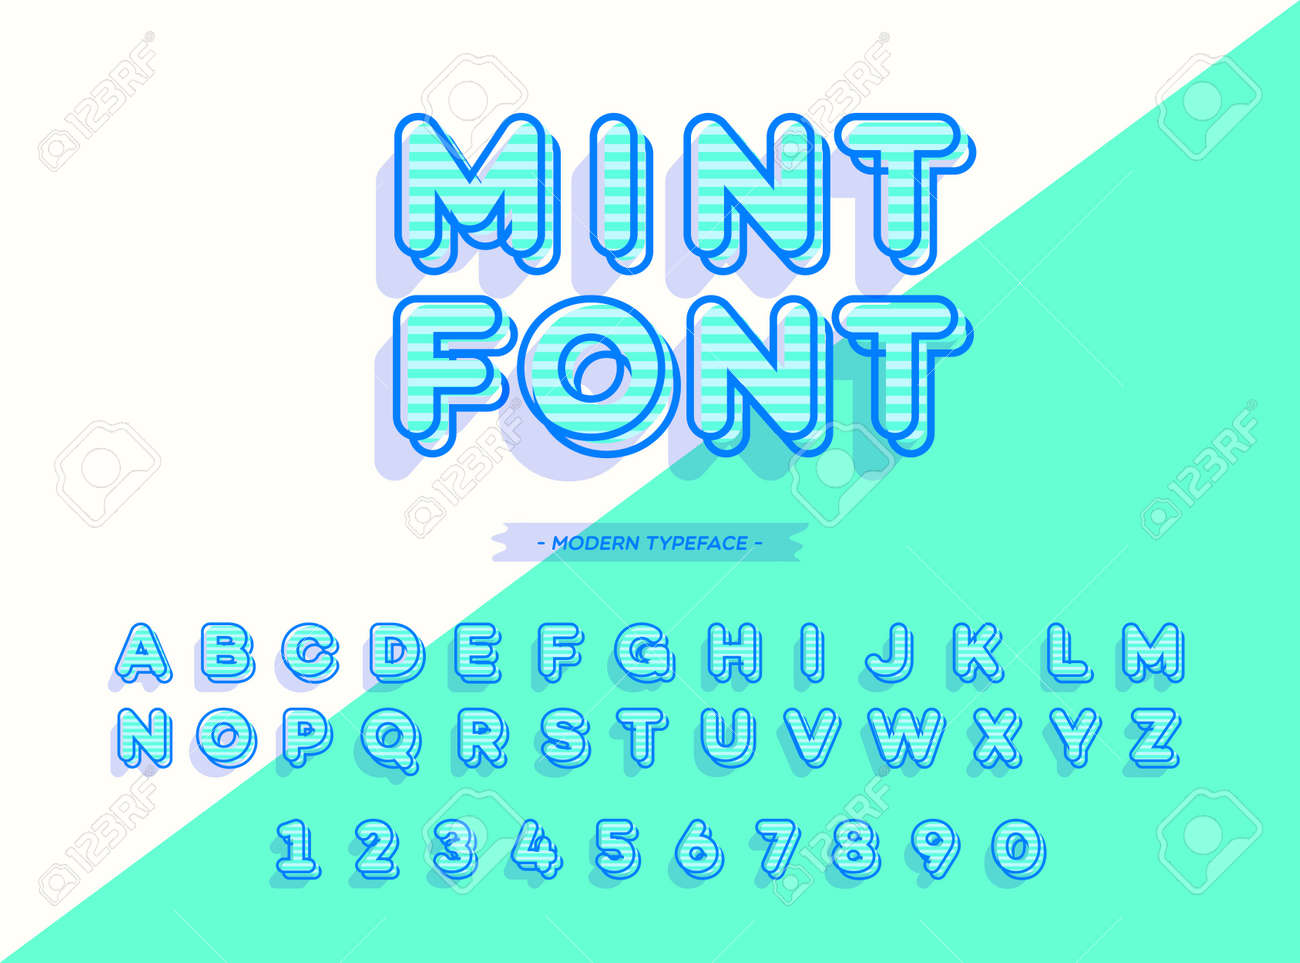 Vector Mint Font 3d Style Modern Typography Alphabet For Logo Emblem Party Poster